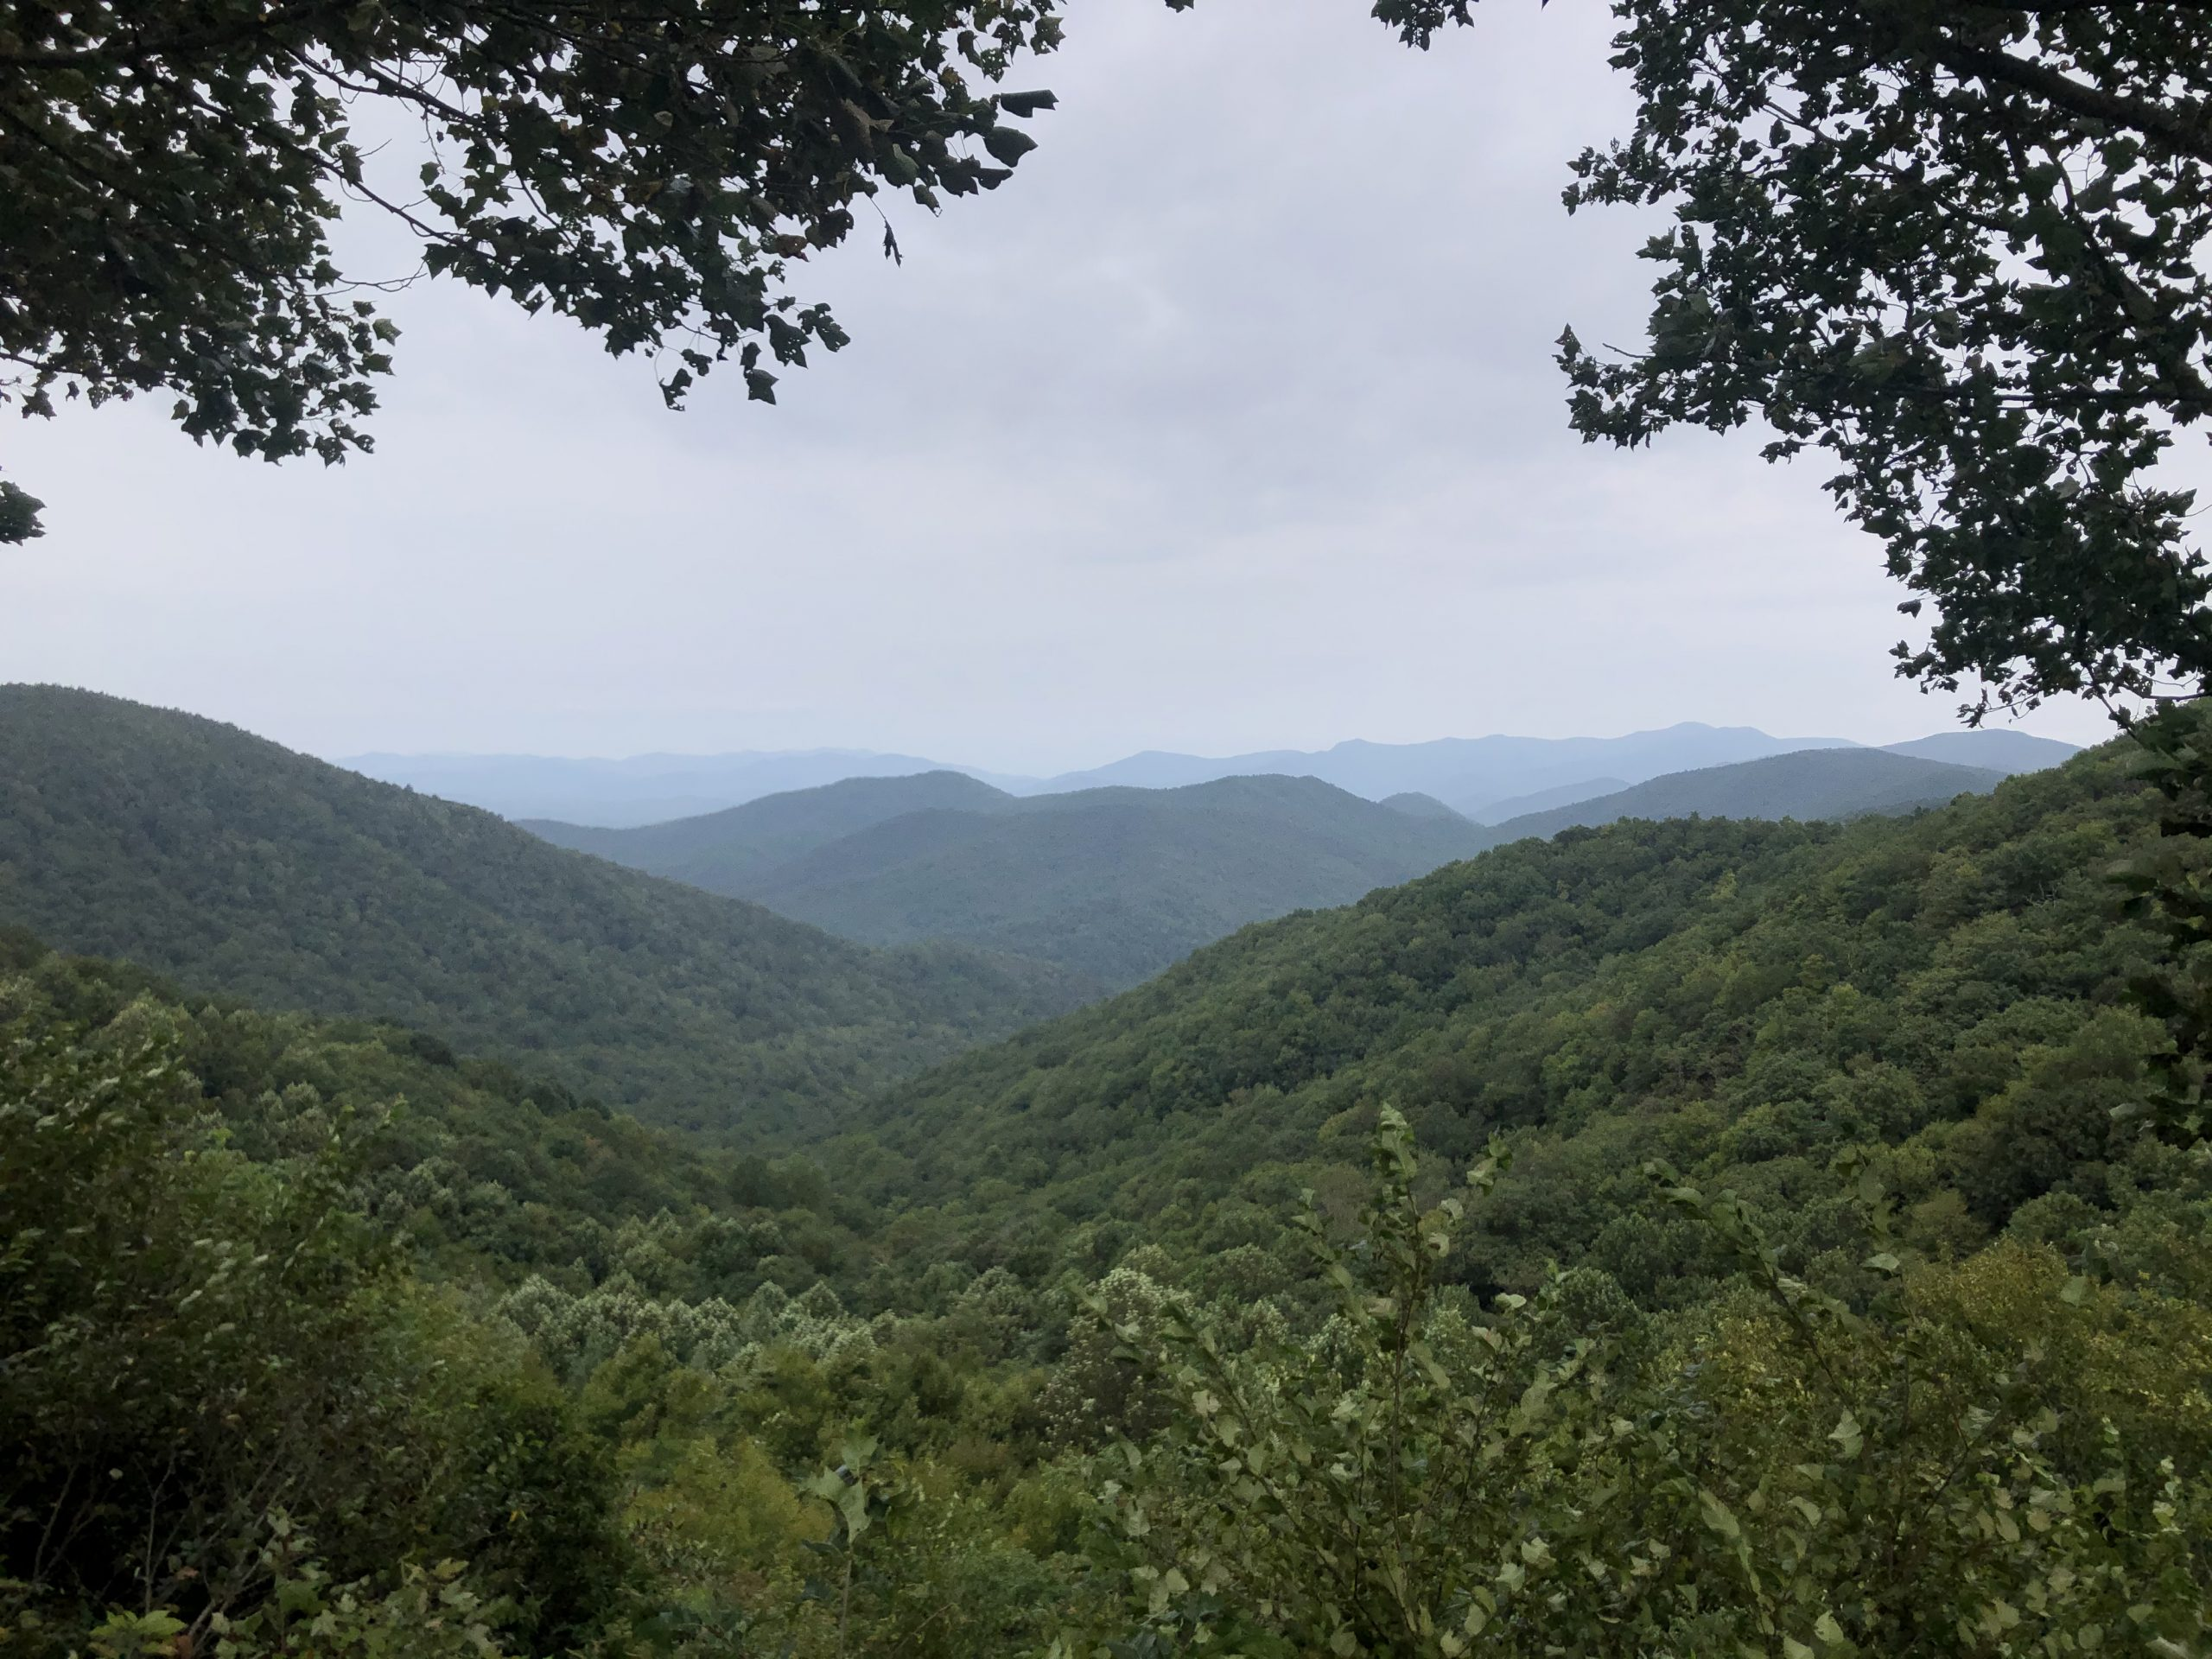 How to Spend a Weekend in the Blue Ridge Mountains